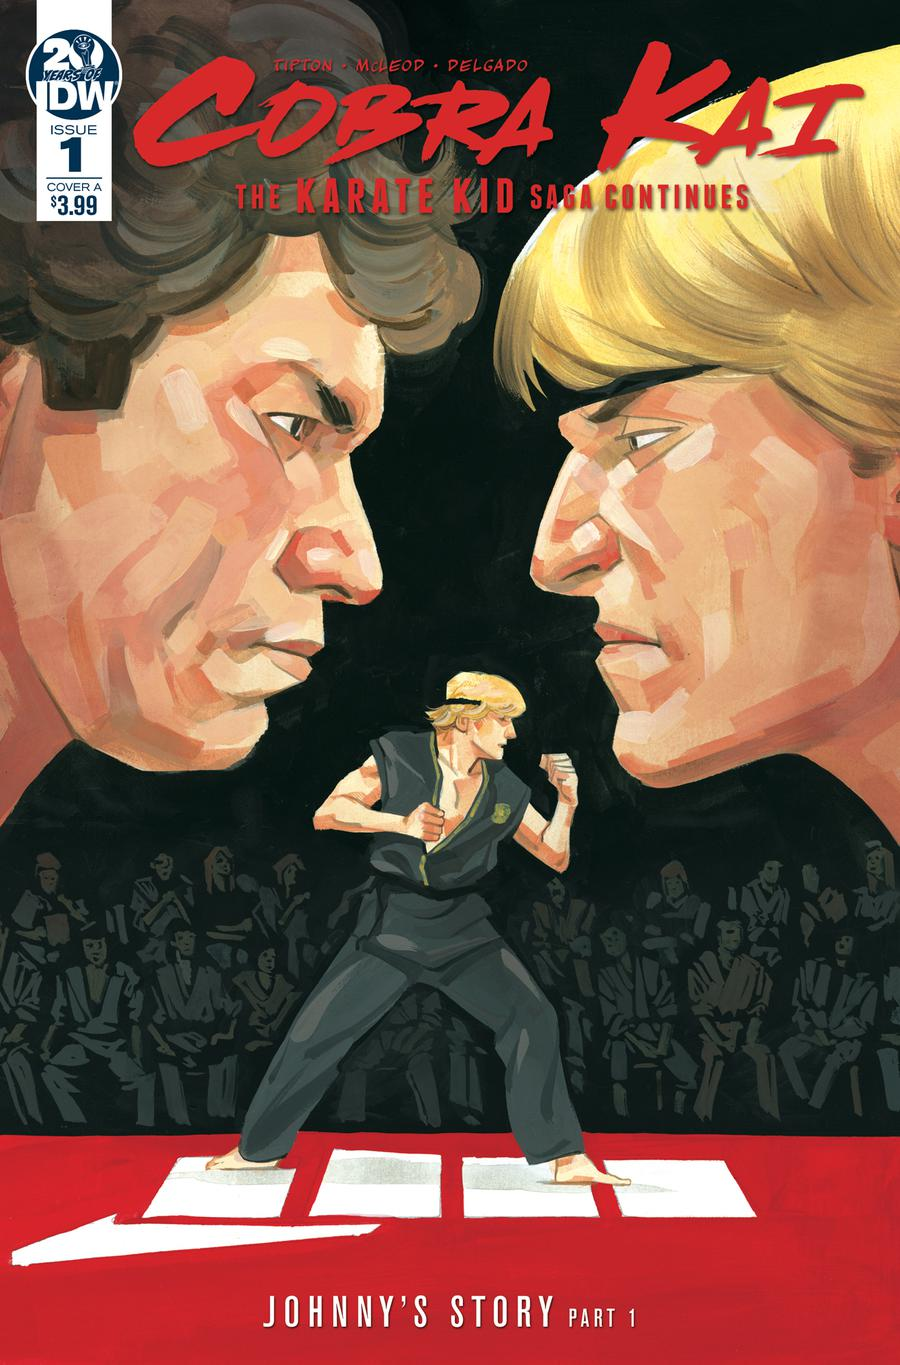 Cobra Kai Karate Kid Saga Continues #1 Cover A Regular Kagan McLeod Cover